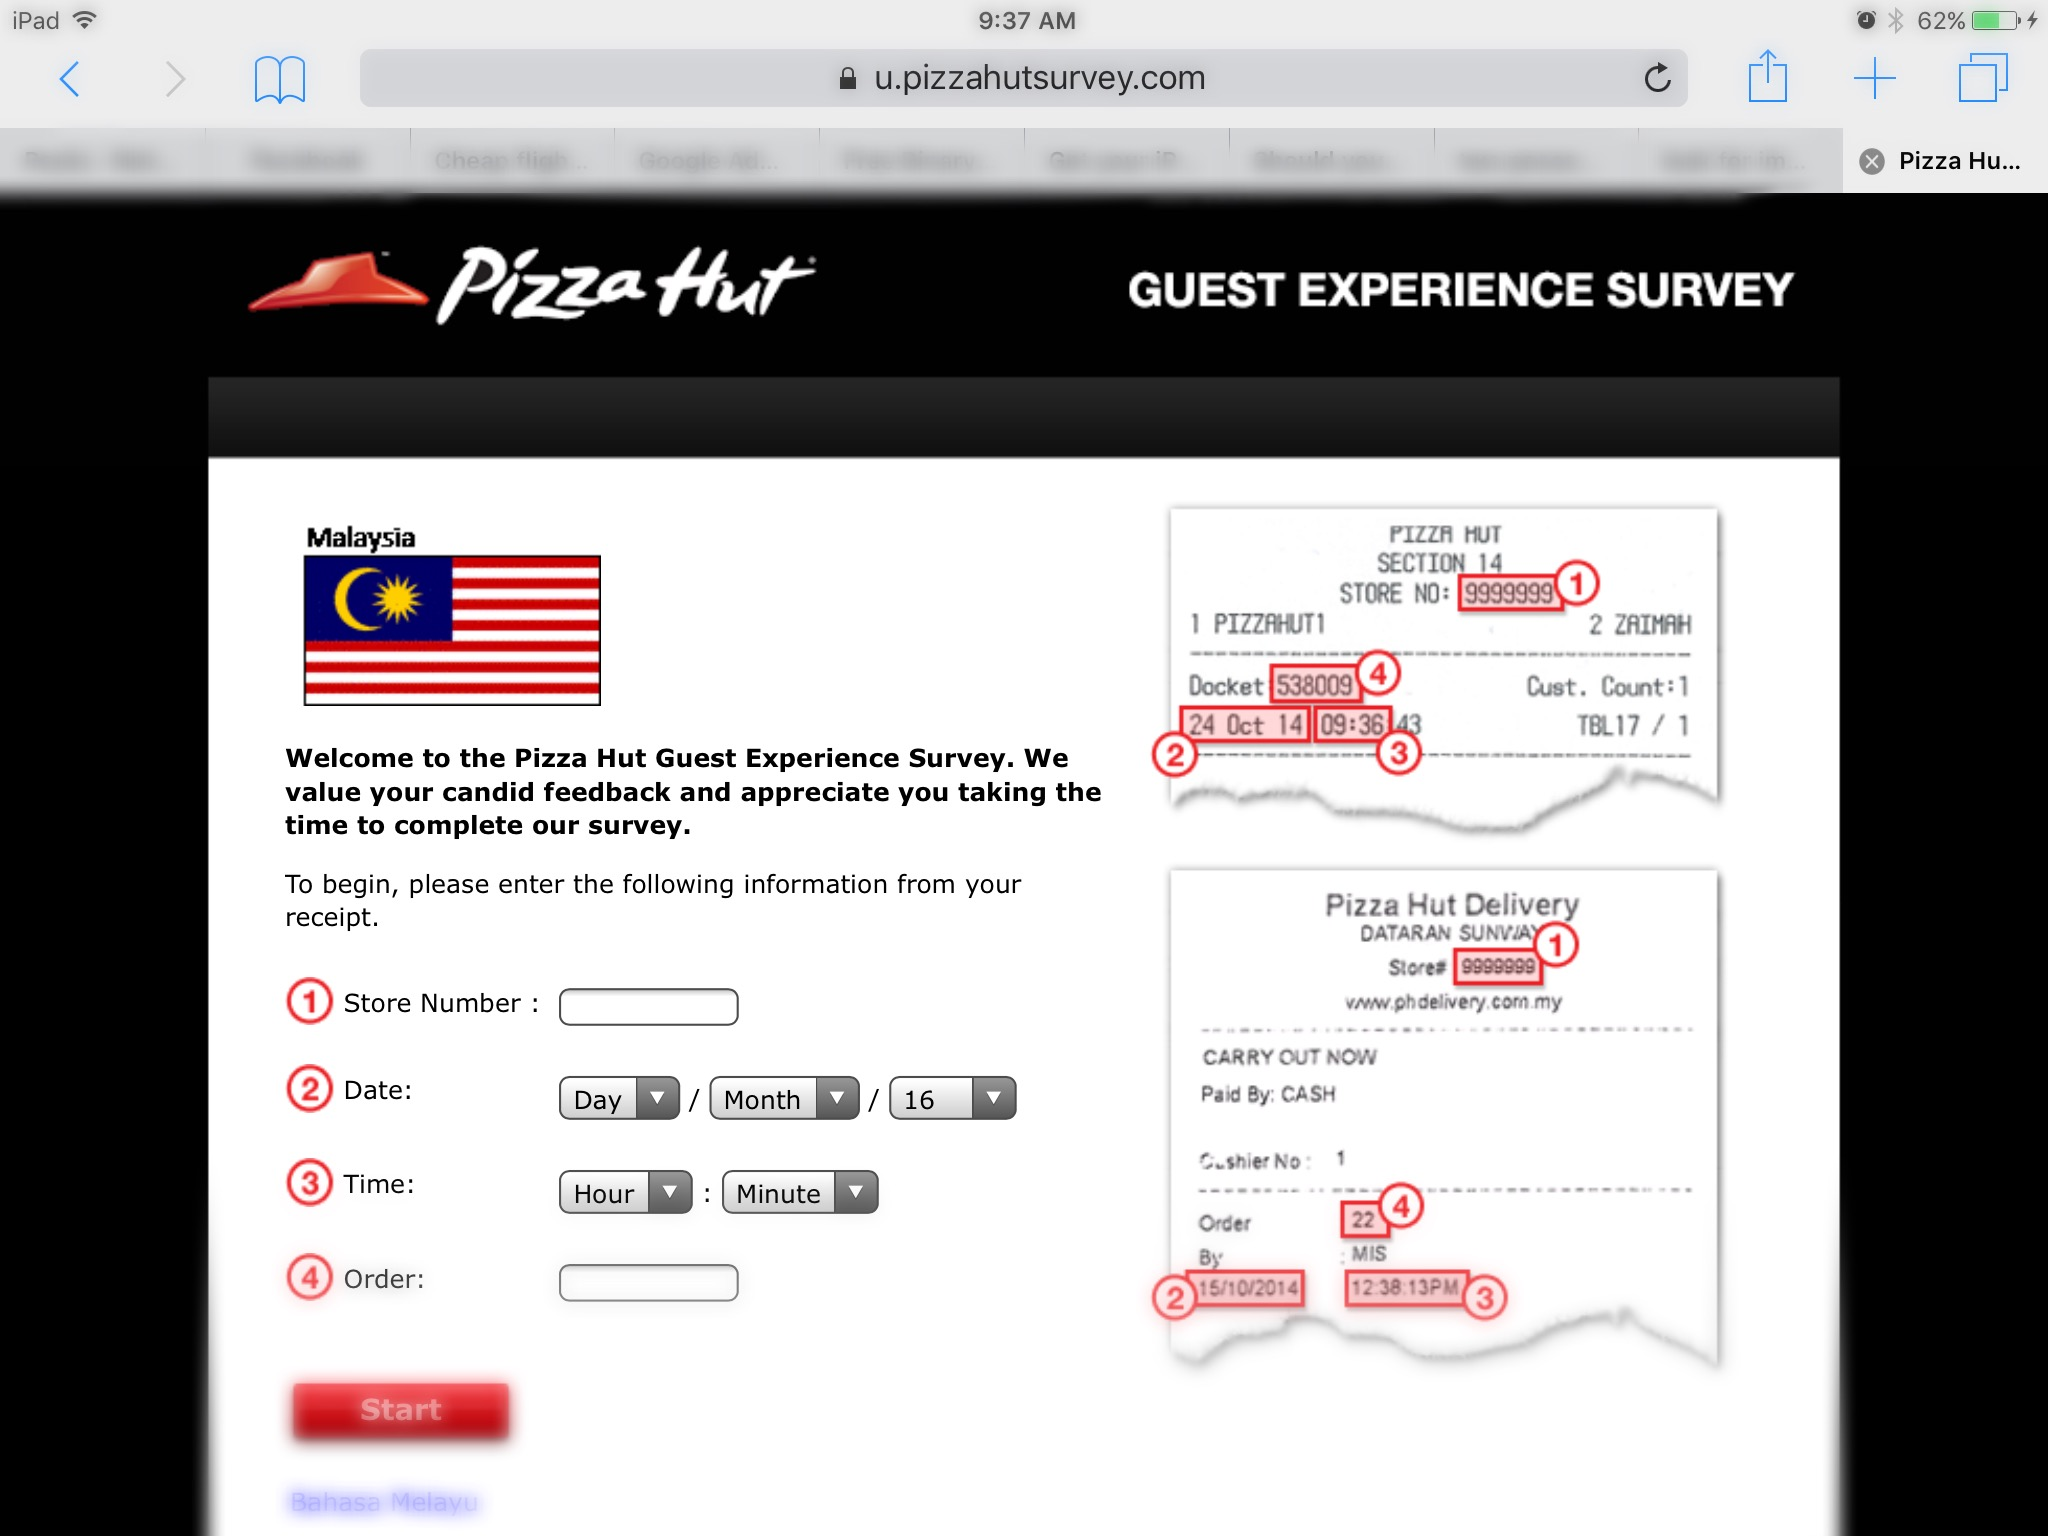 Pizza Hut Failed To Deliver Within 30 Mins | Not Your Typical Tourist